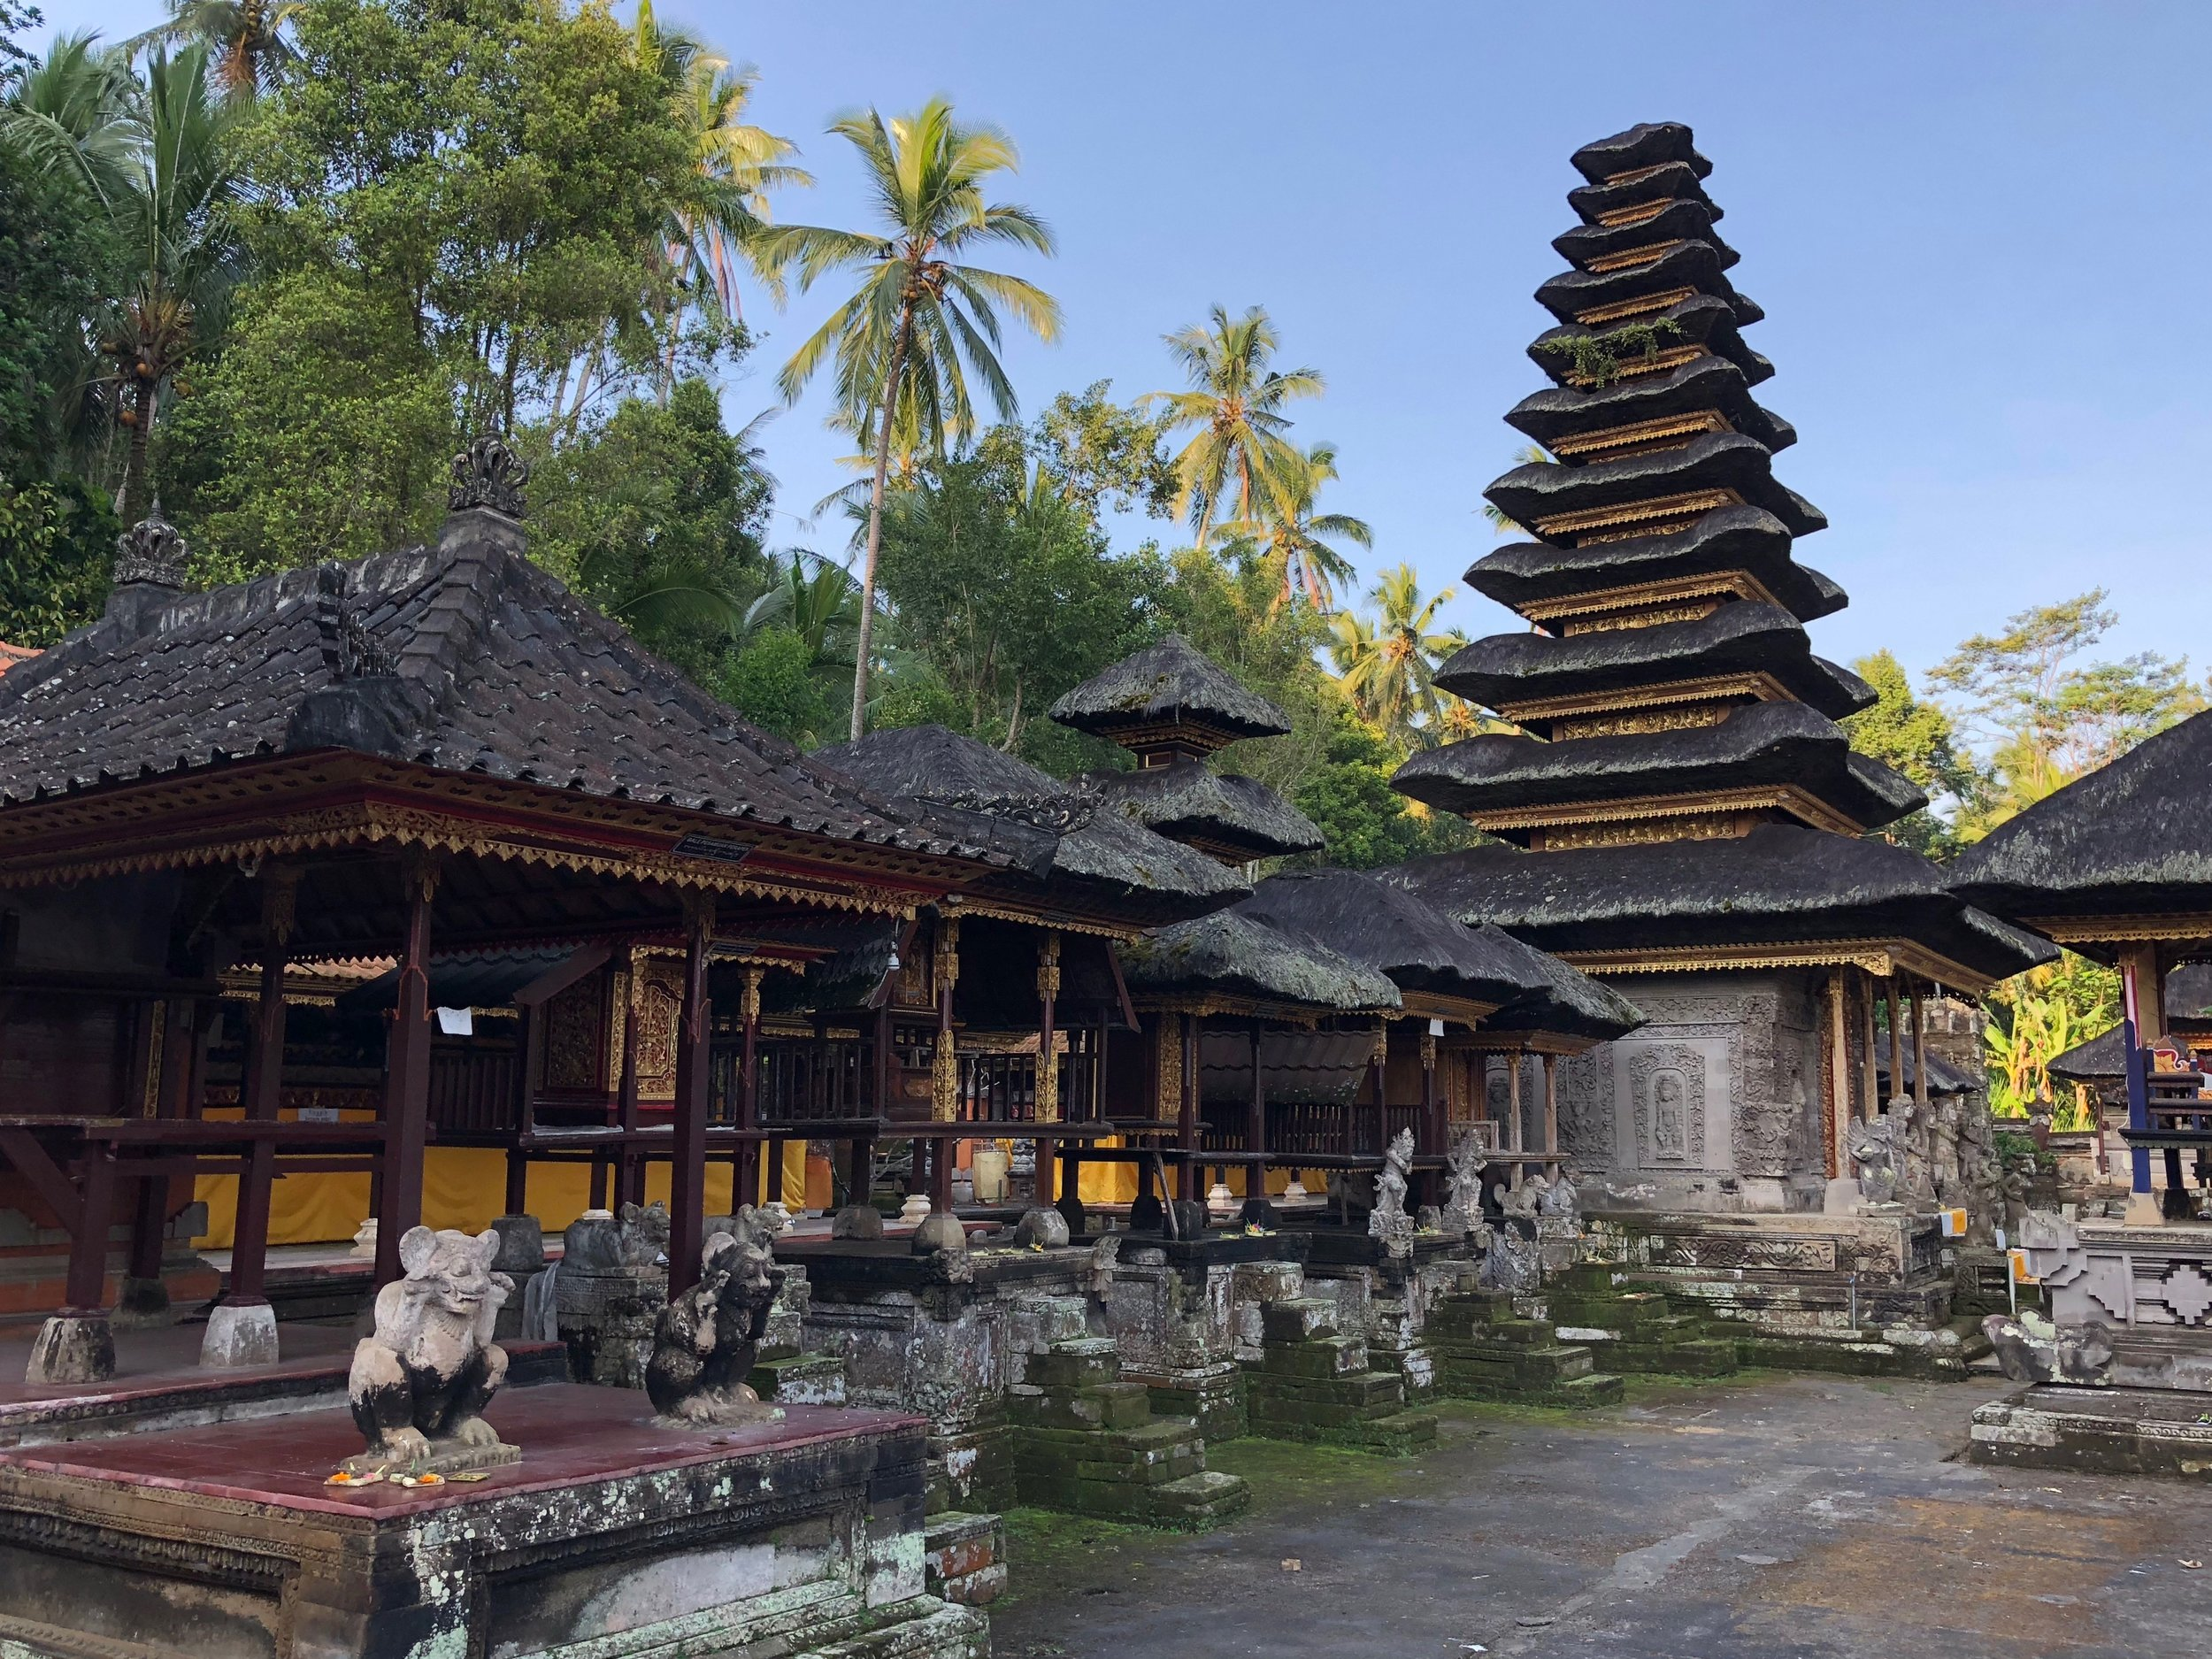 Pura Kehen is dedicated to the Hindu god of fire